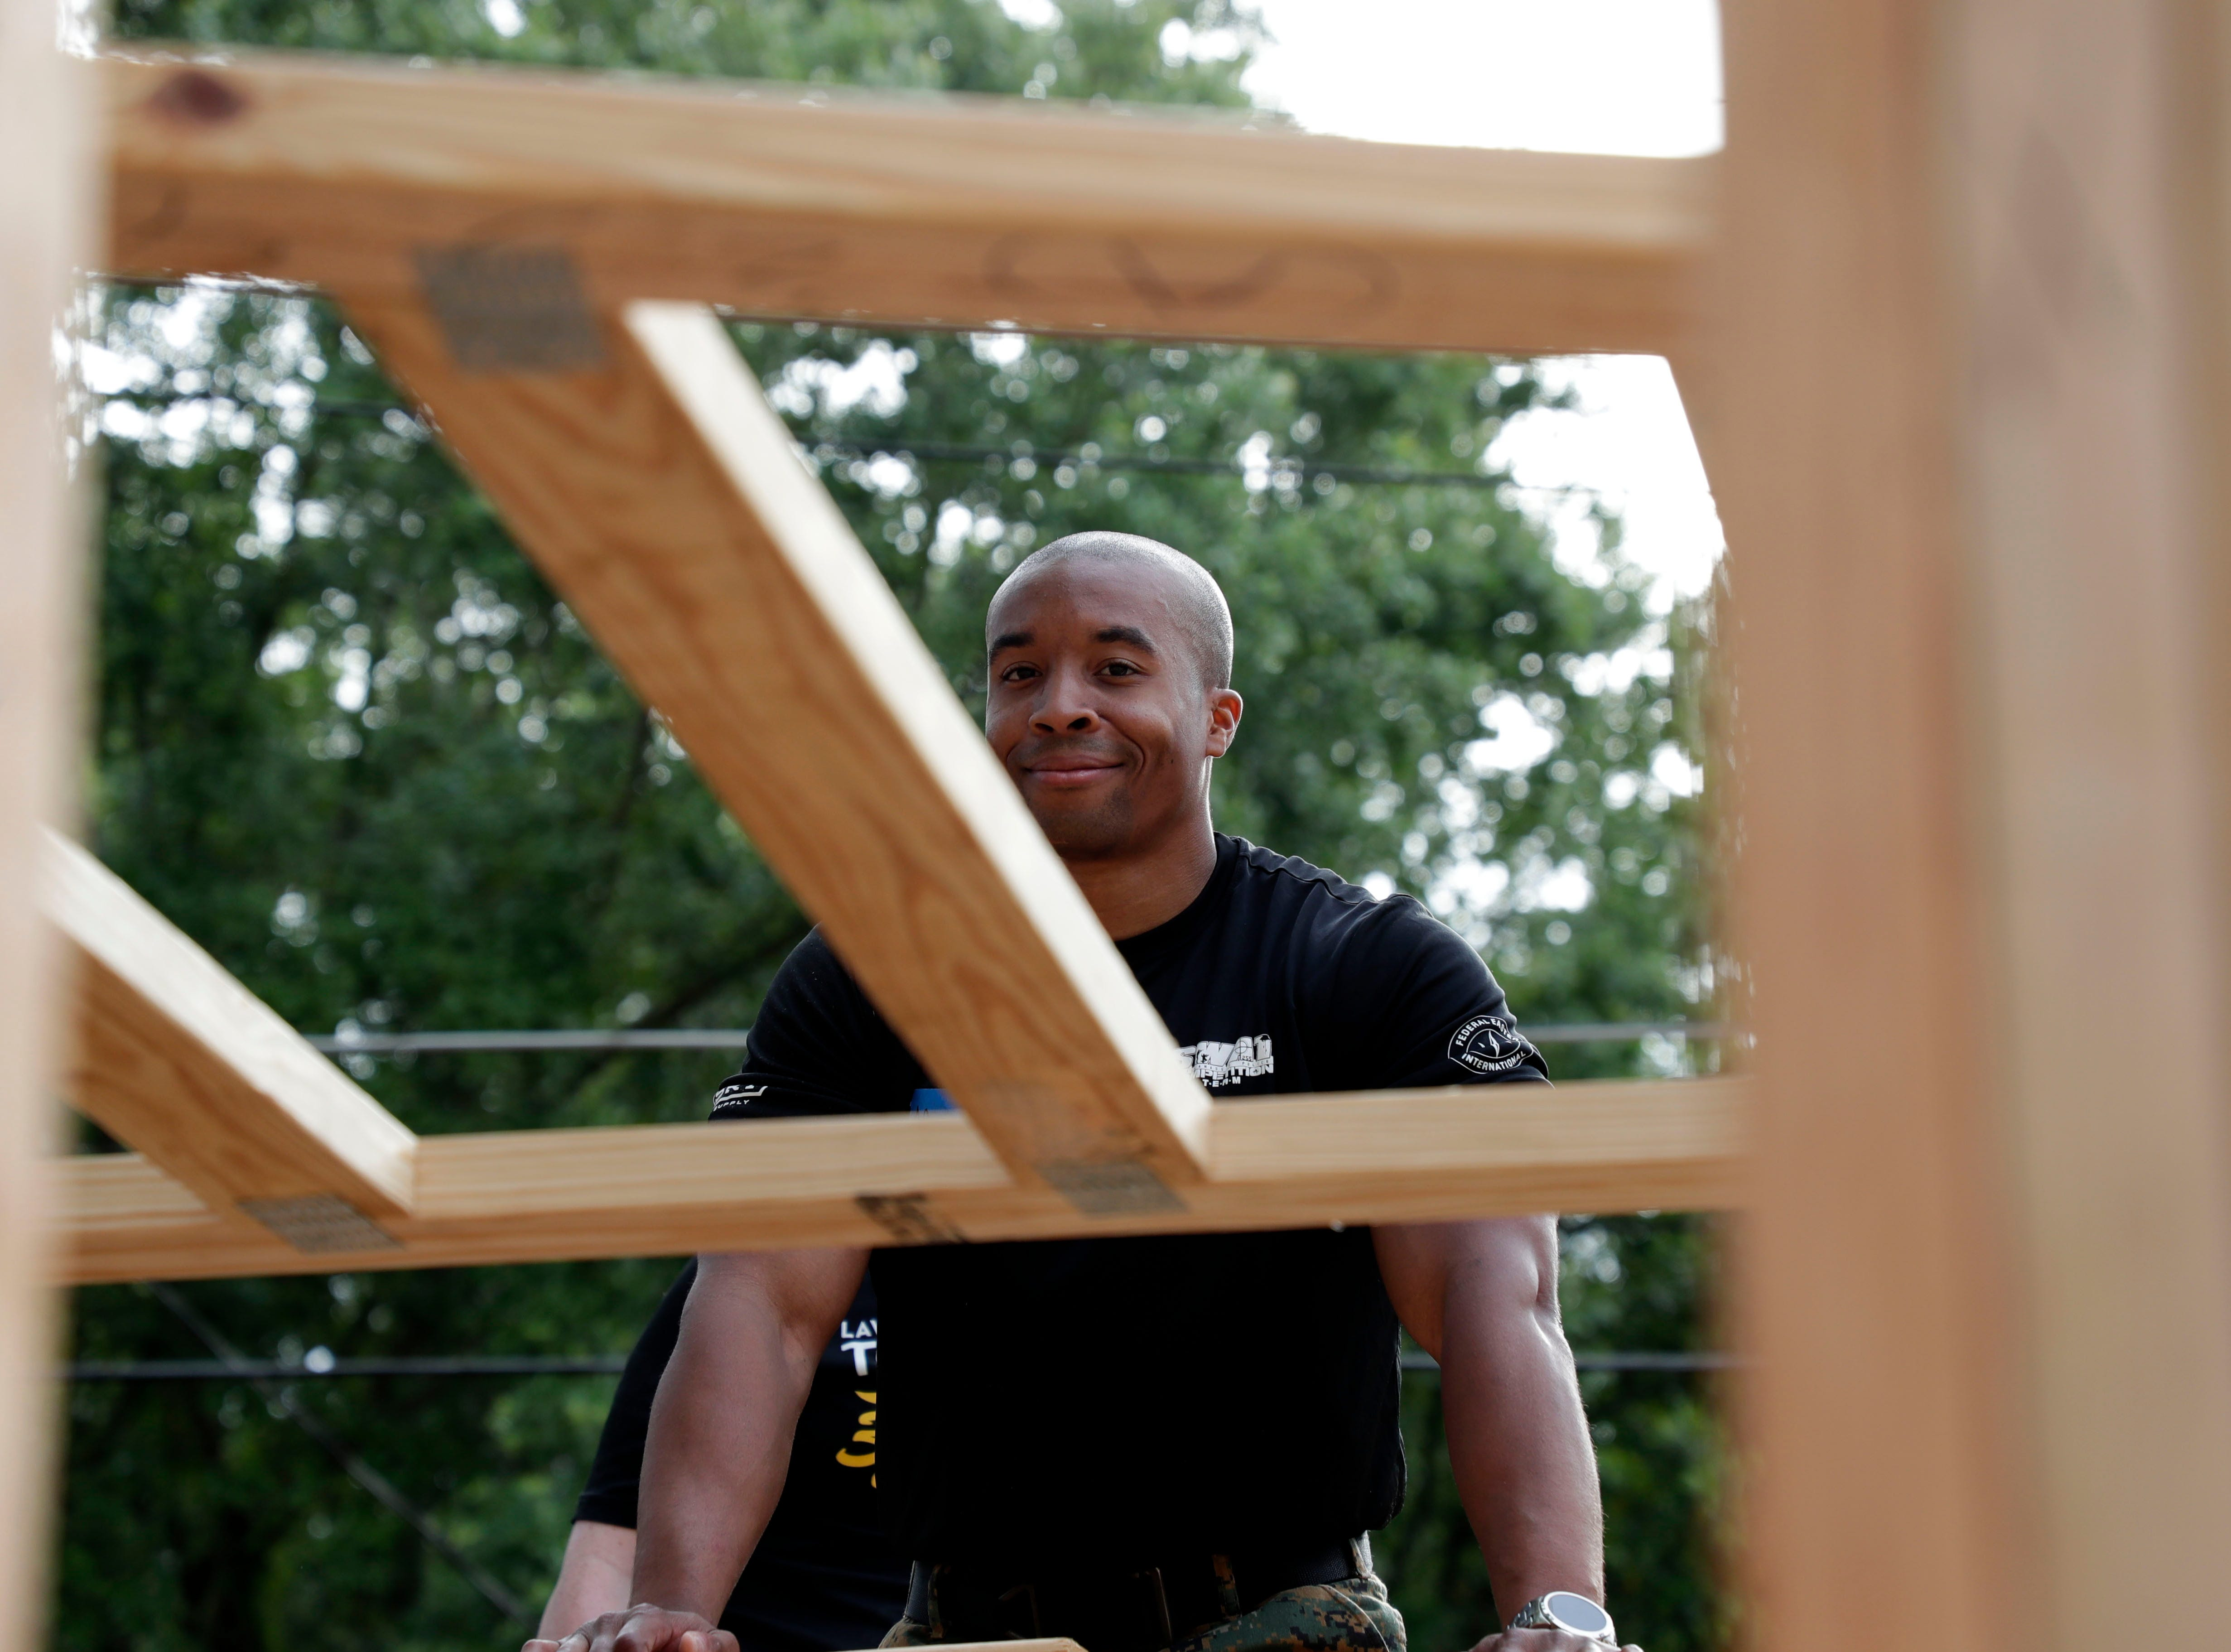 Marcus Johnson, an investigator with the Tallahassee Police Department smiles as he works alongside elected and appointed city officials, employee volunteers and representatives from Habitat for Humanity Friday, April 12, 2019. Together the volunteers are working to build the future home for Recha Evans and her children.